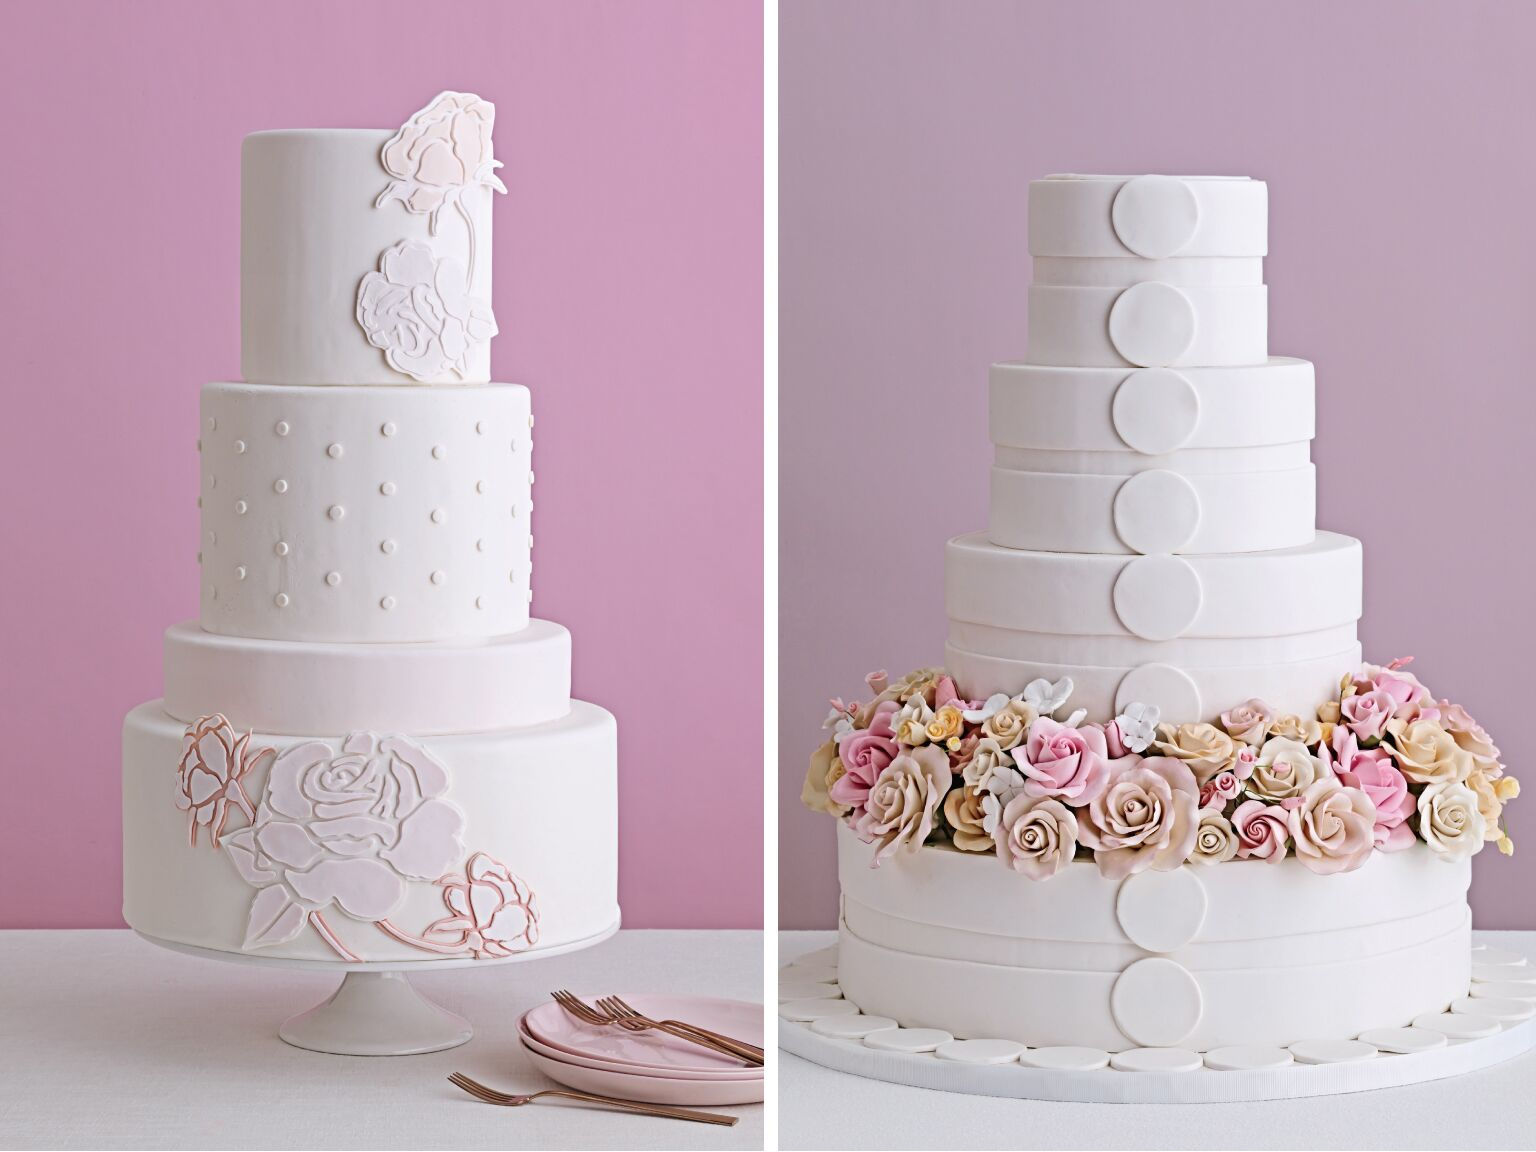 Standout Wedding Cakes (With Serious Fillings